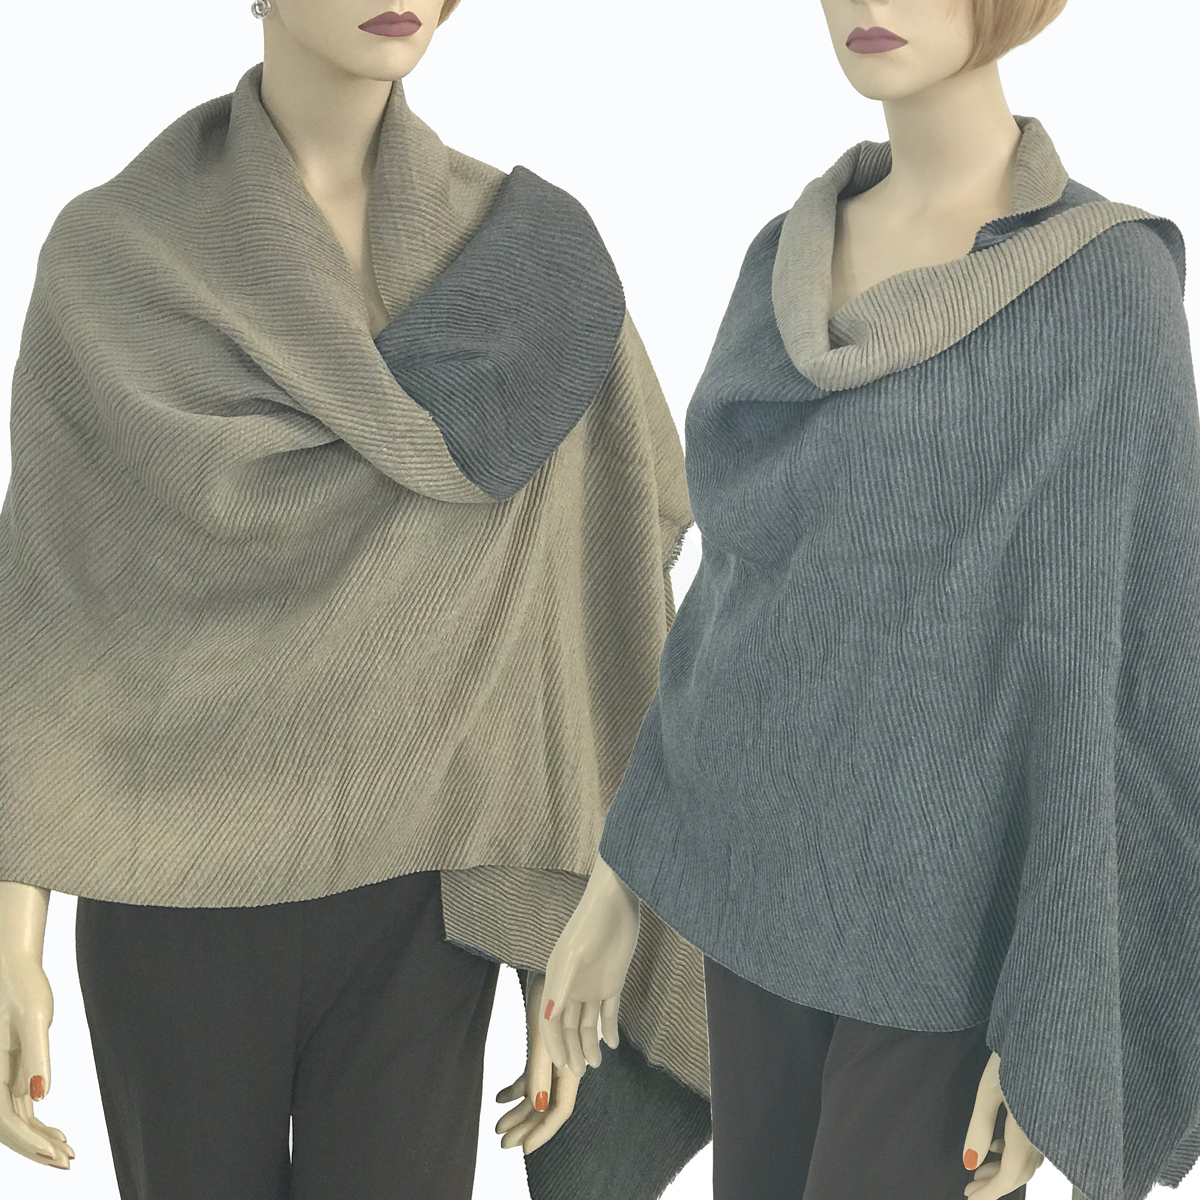 Oblong Shawls - Reversible Pleated 3072 & 3073